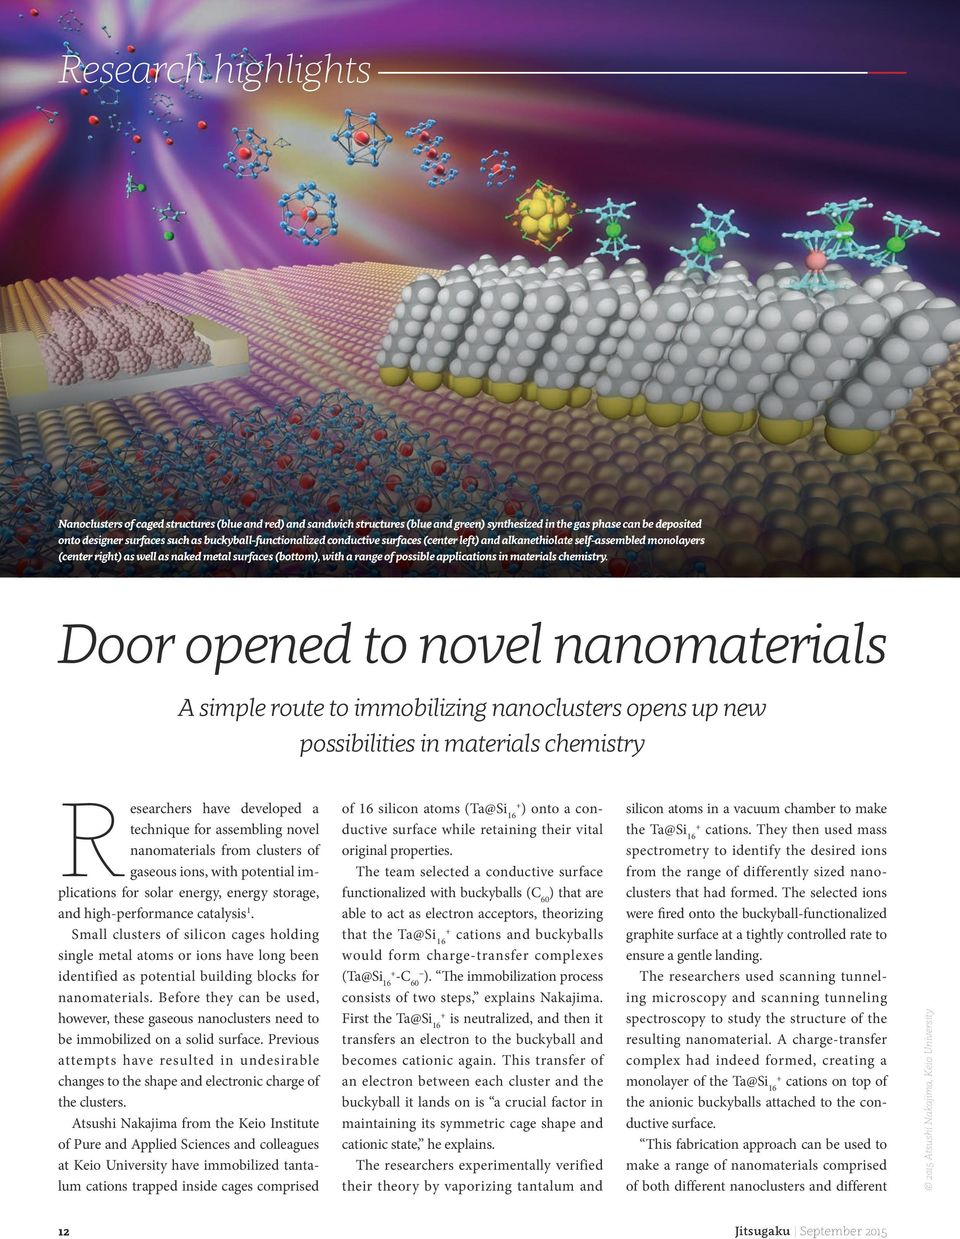 Door opened to novel nanomaterials A simple route to immobilizing nanoclusters opens up new possibilities in materials chemistry Researchers have developed a technique for assembling novel